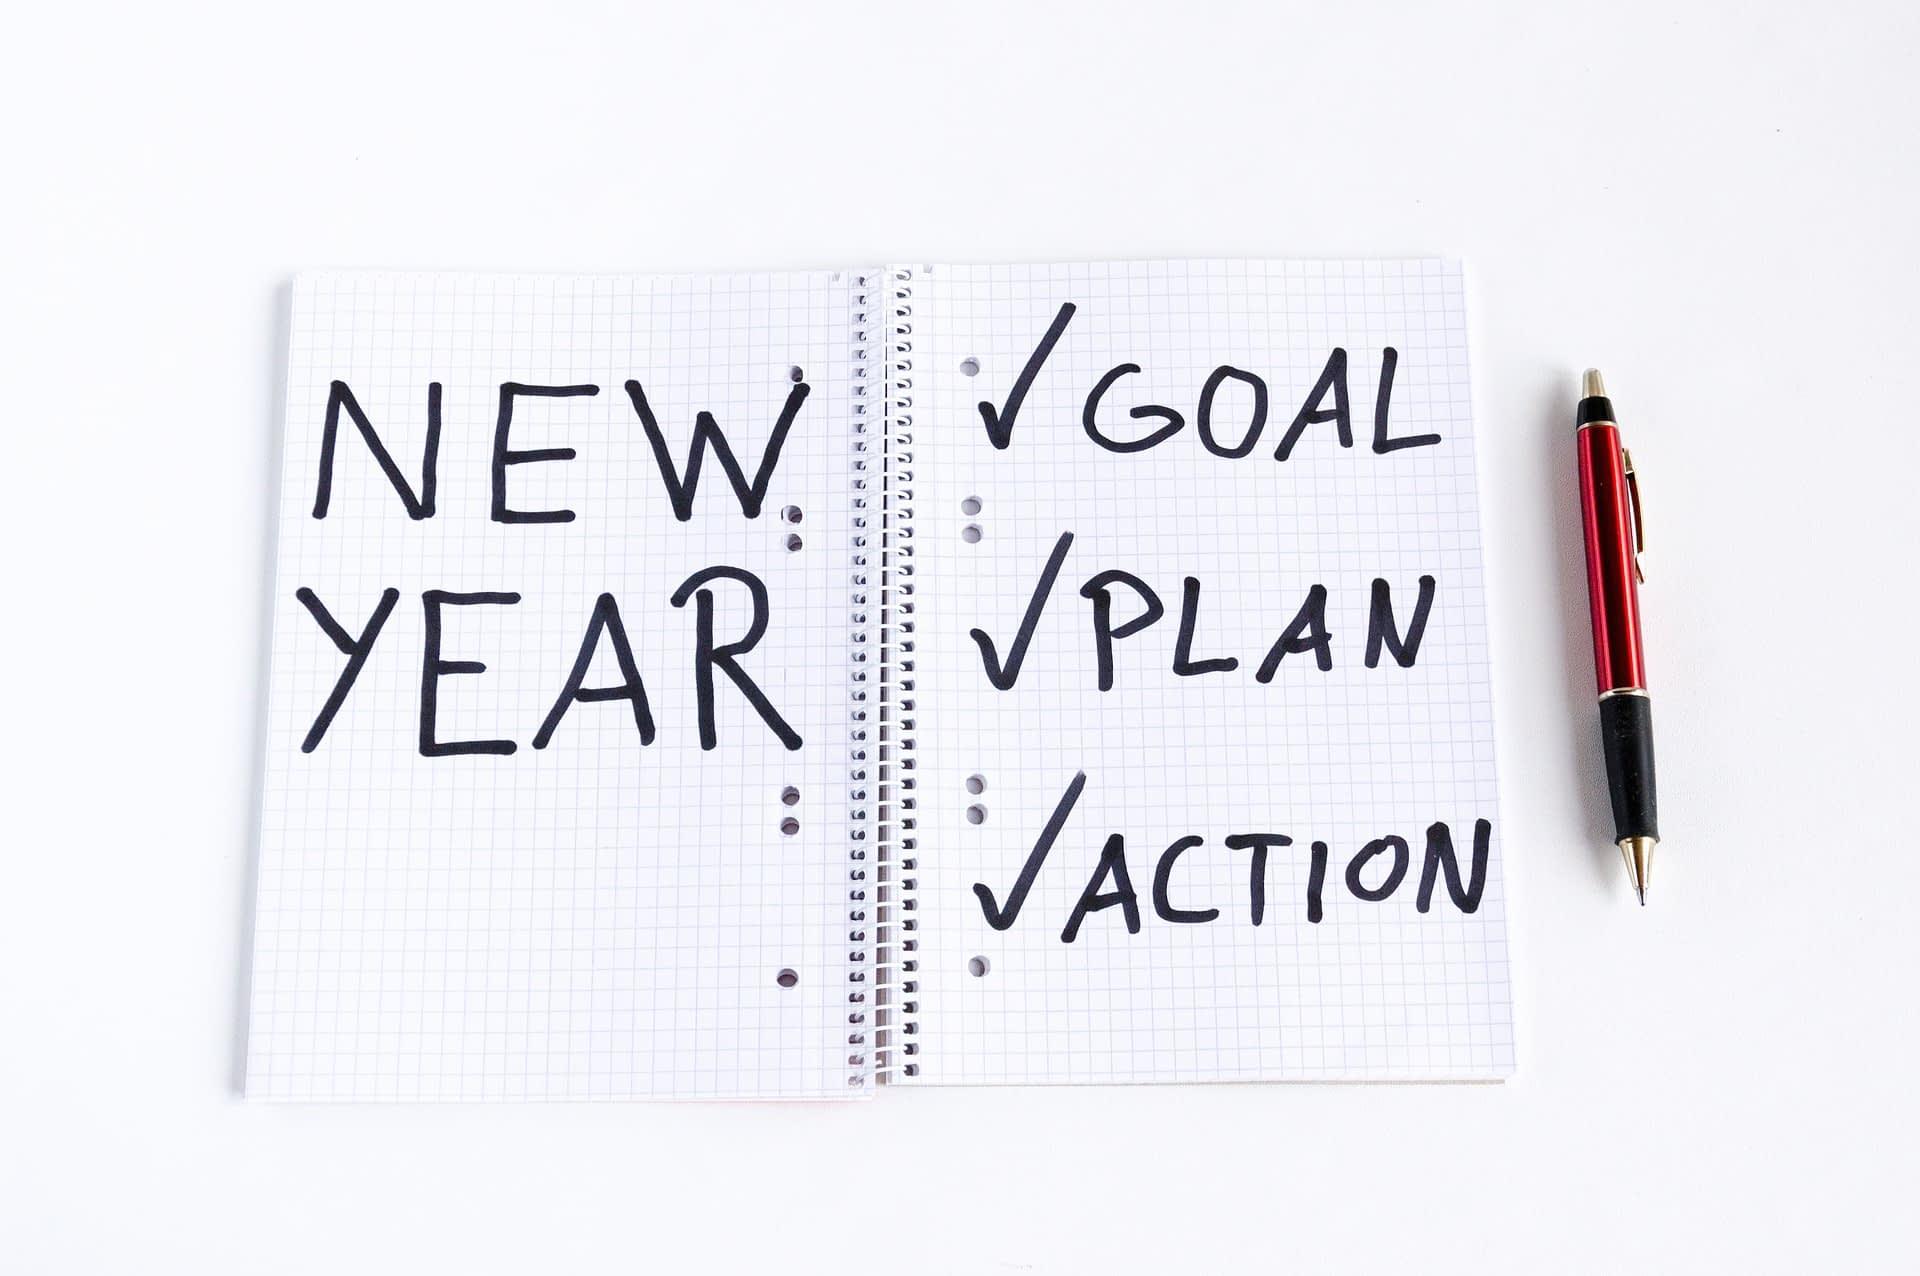 new year's resolutions goals